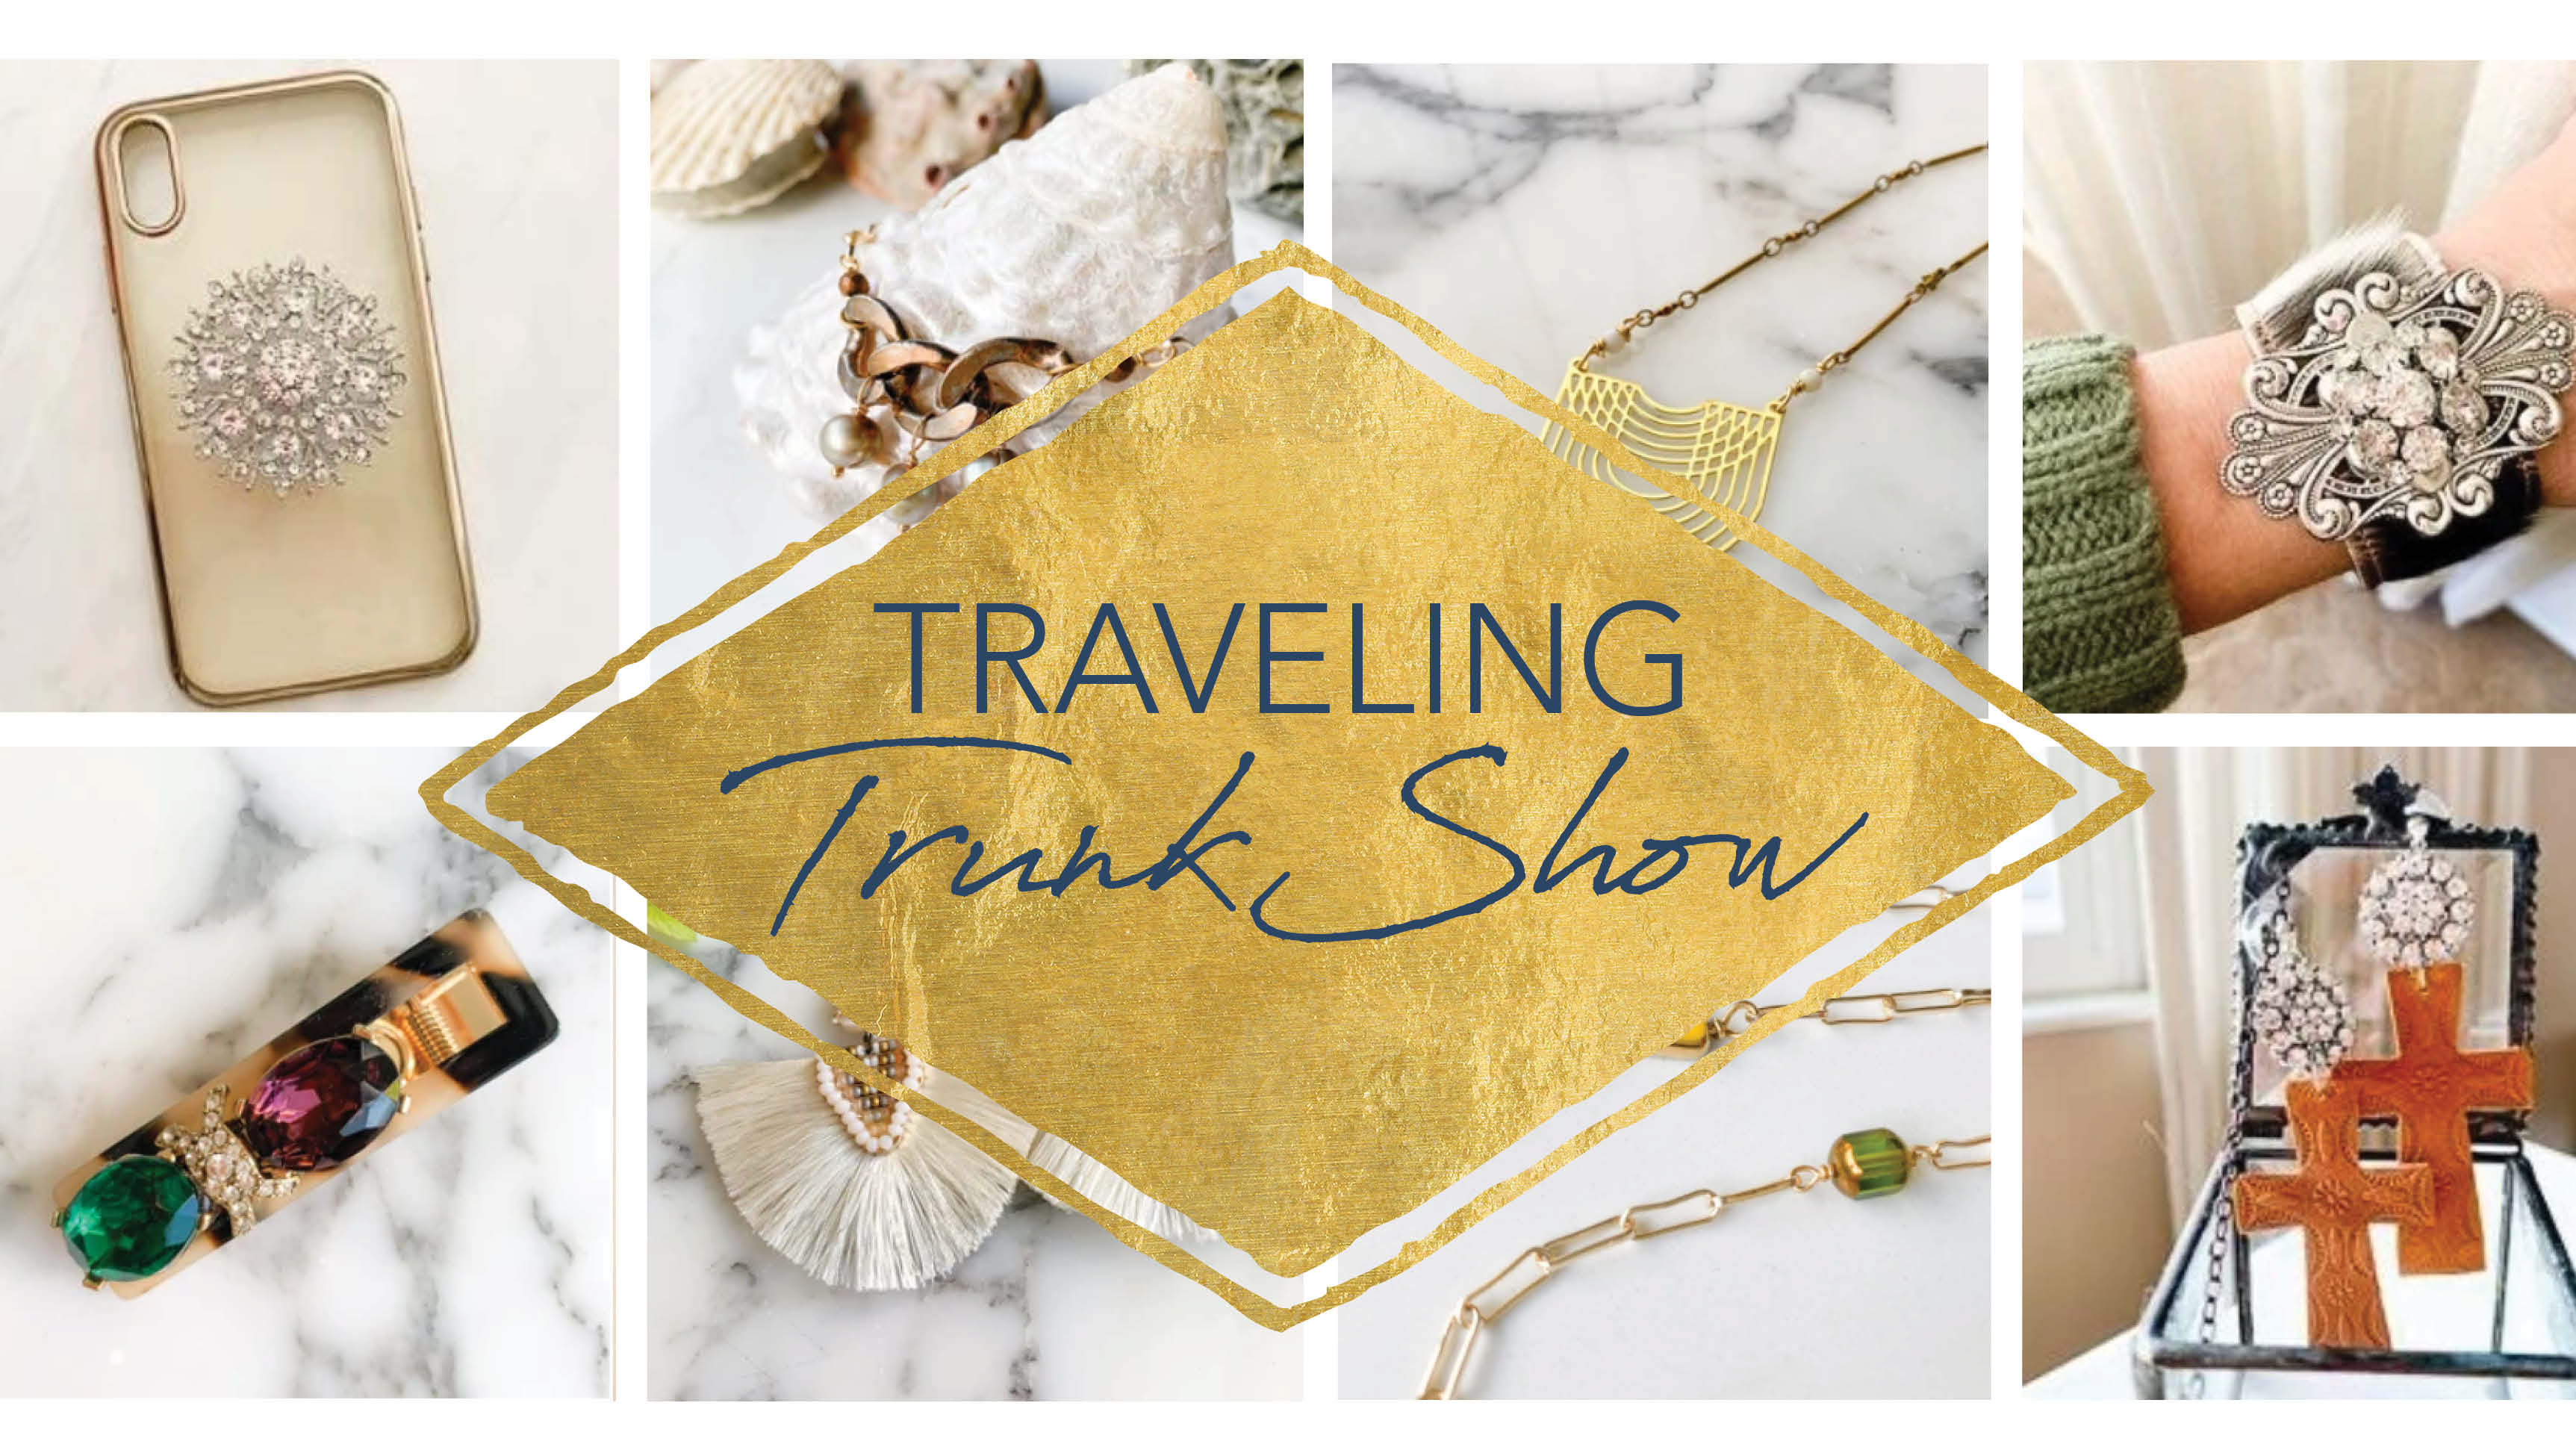 Traveling Trunk Show Event Cover